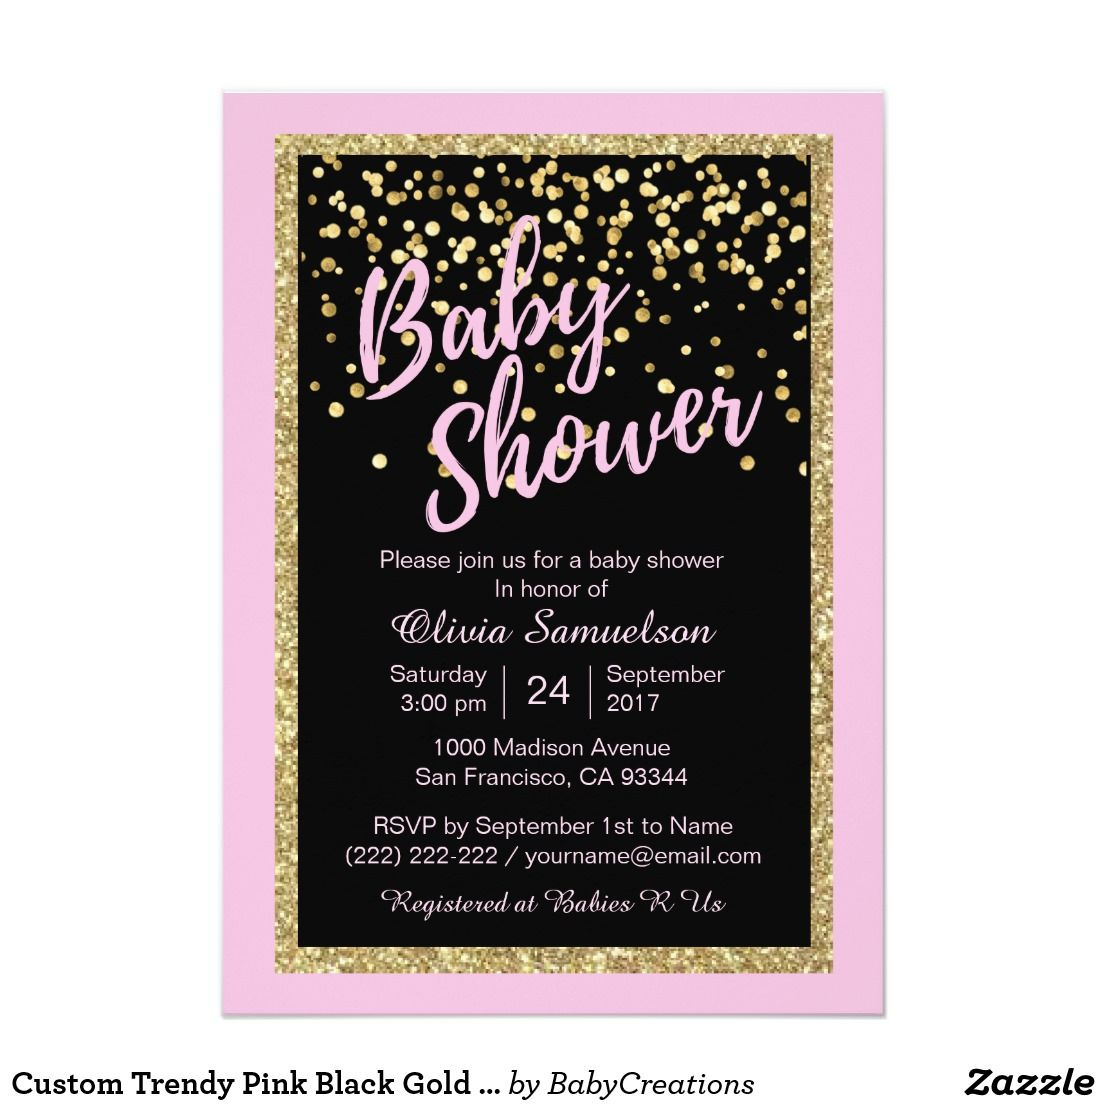 Custom Trendy Pink Black Gold Glitter Baby Shower Card | Unique baby ...